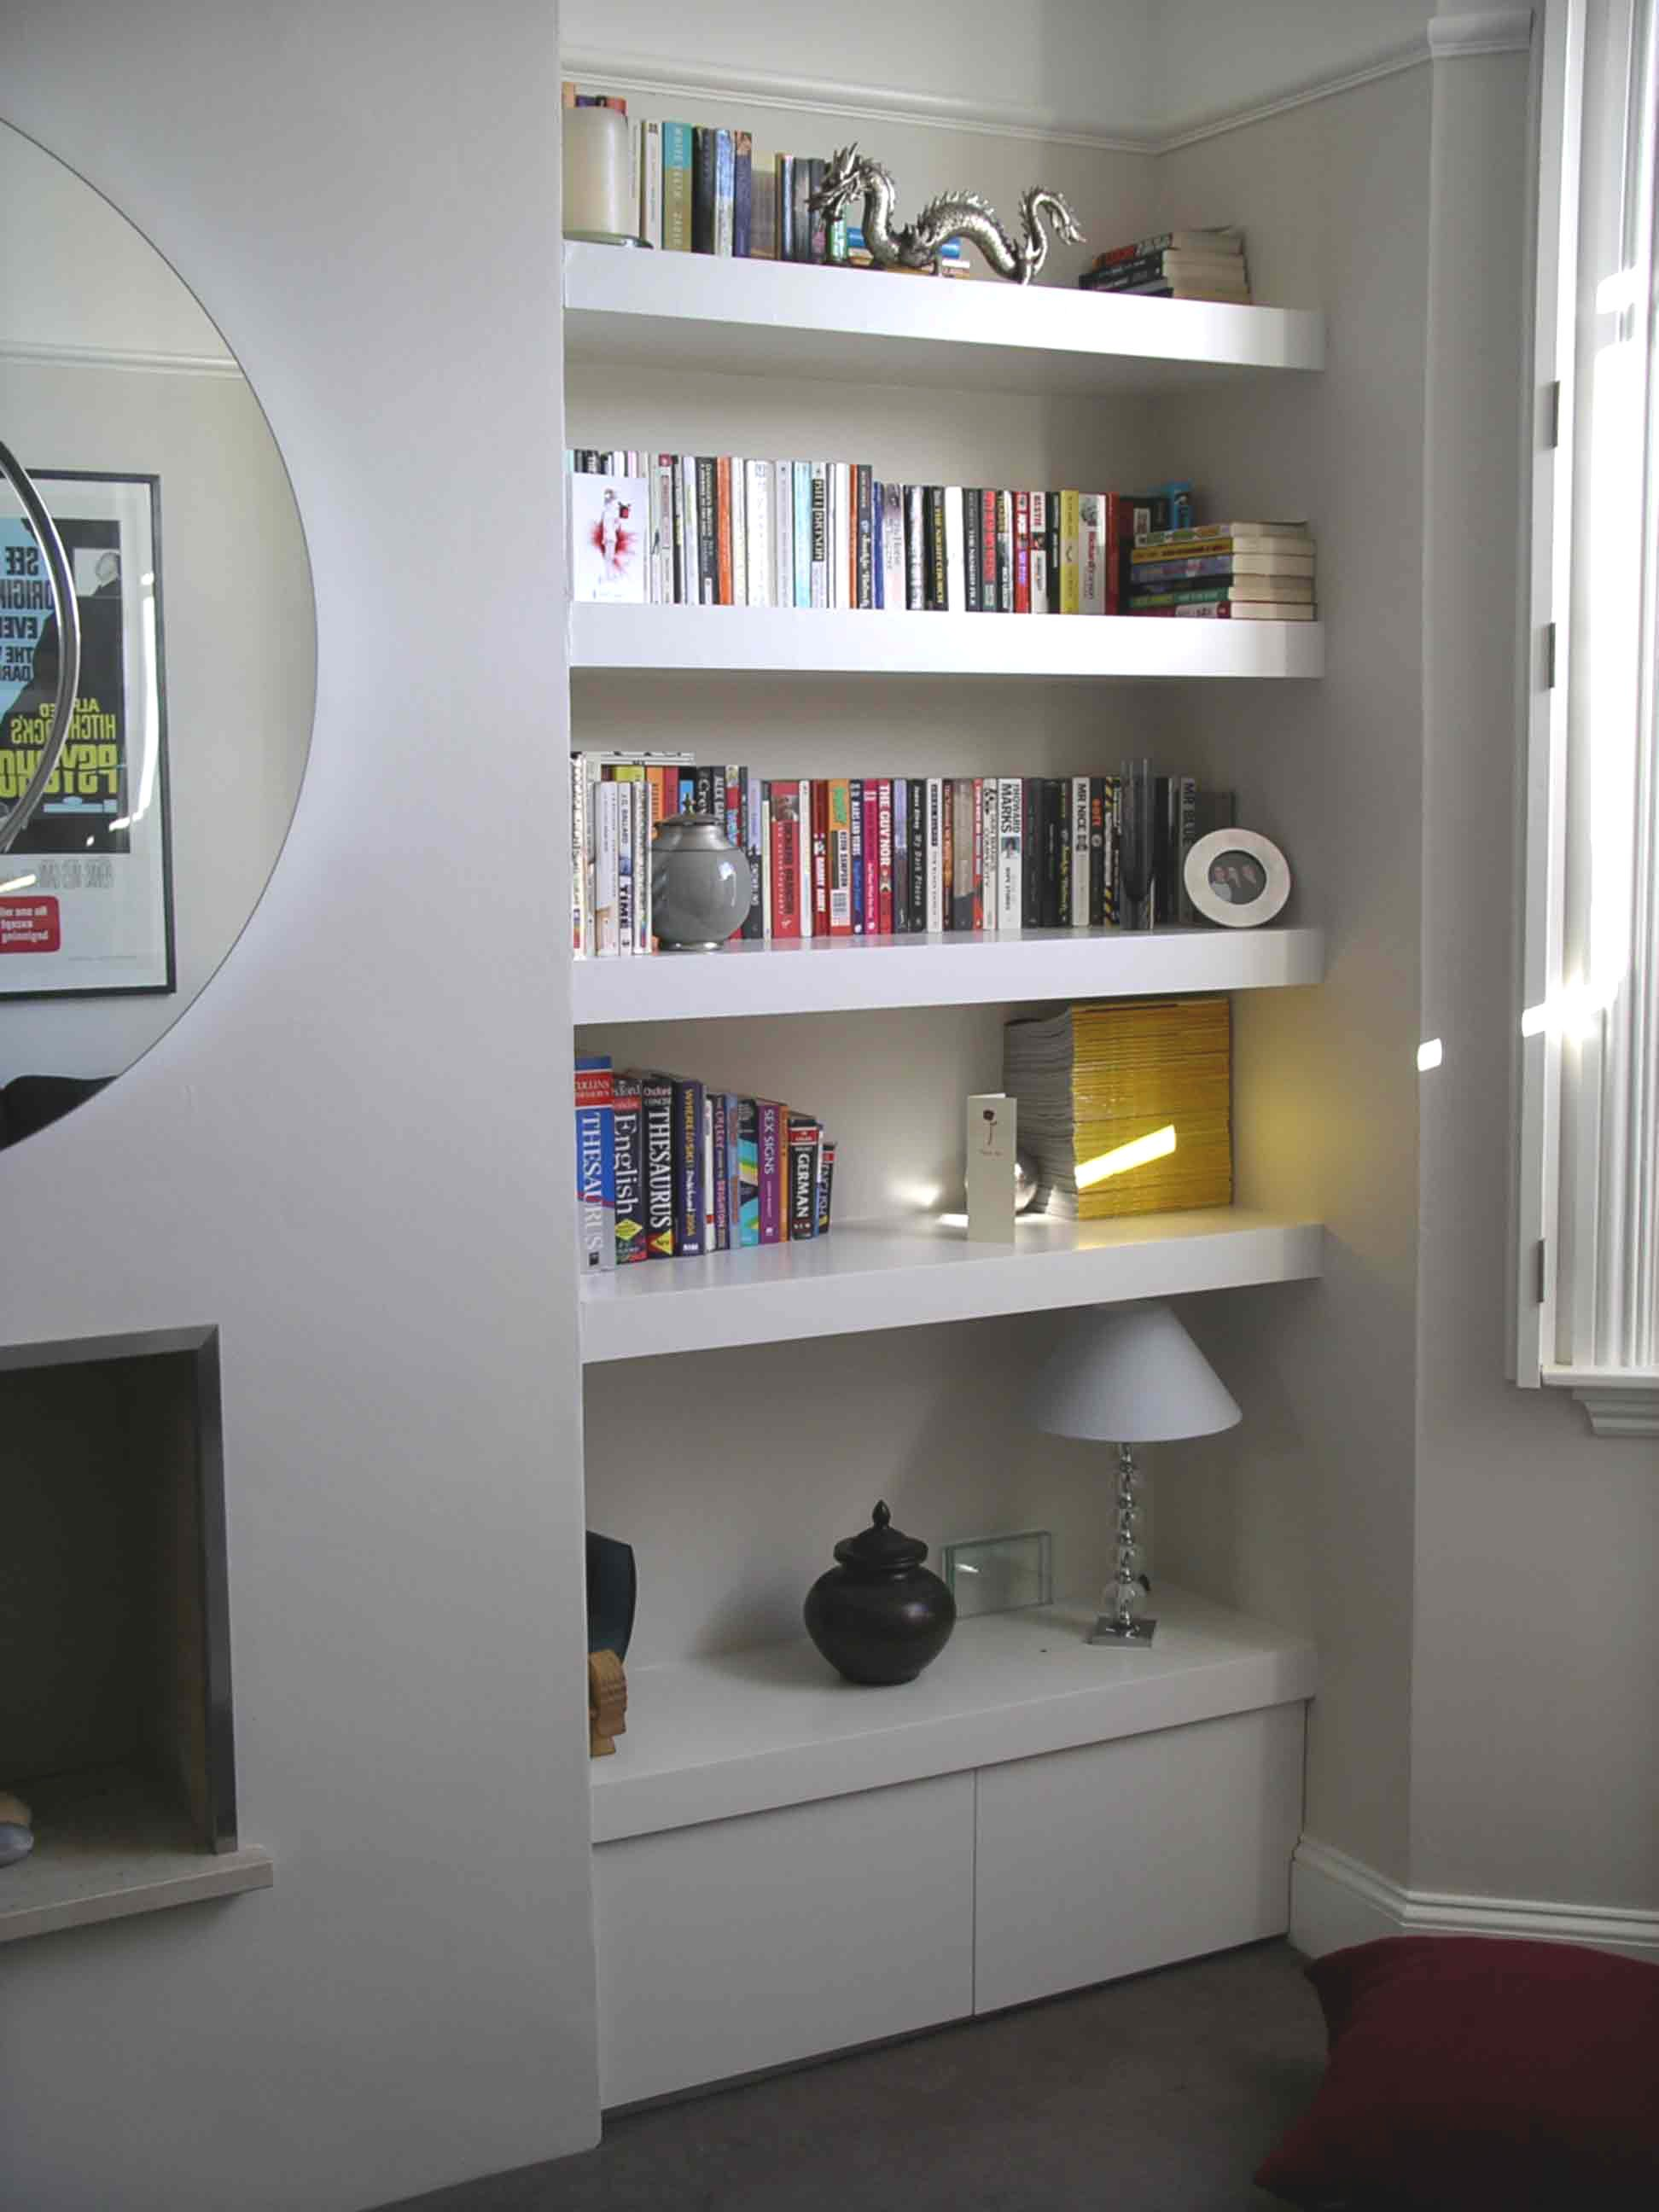 Floating Shelves On Hidden Fixings Alcove StorageAlcove ShelvingDining Room StorageLiving